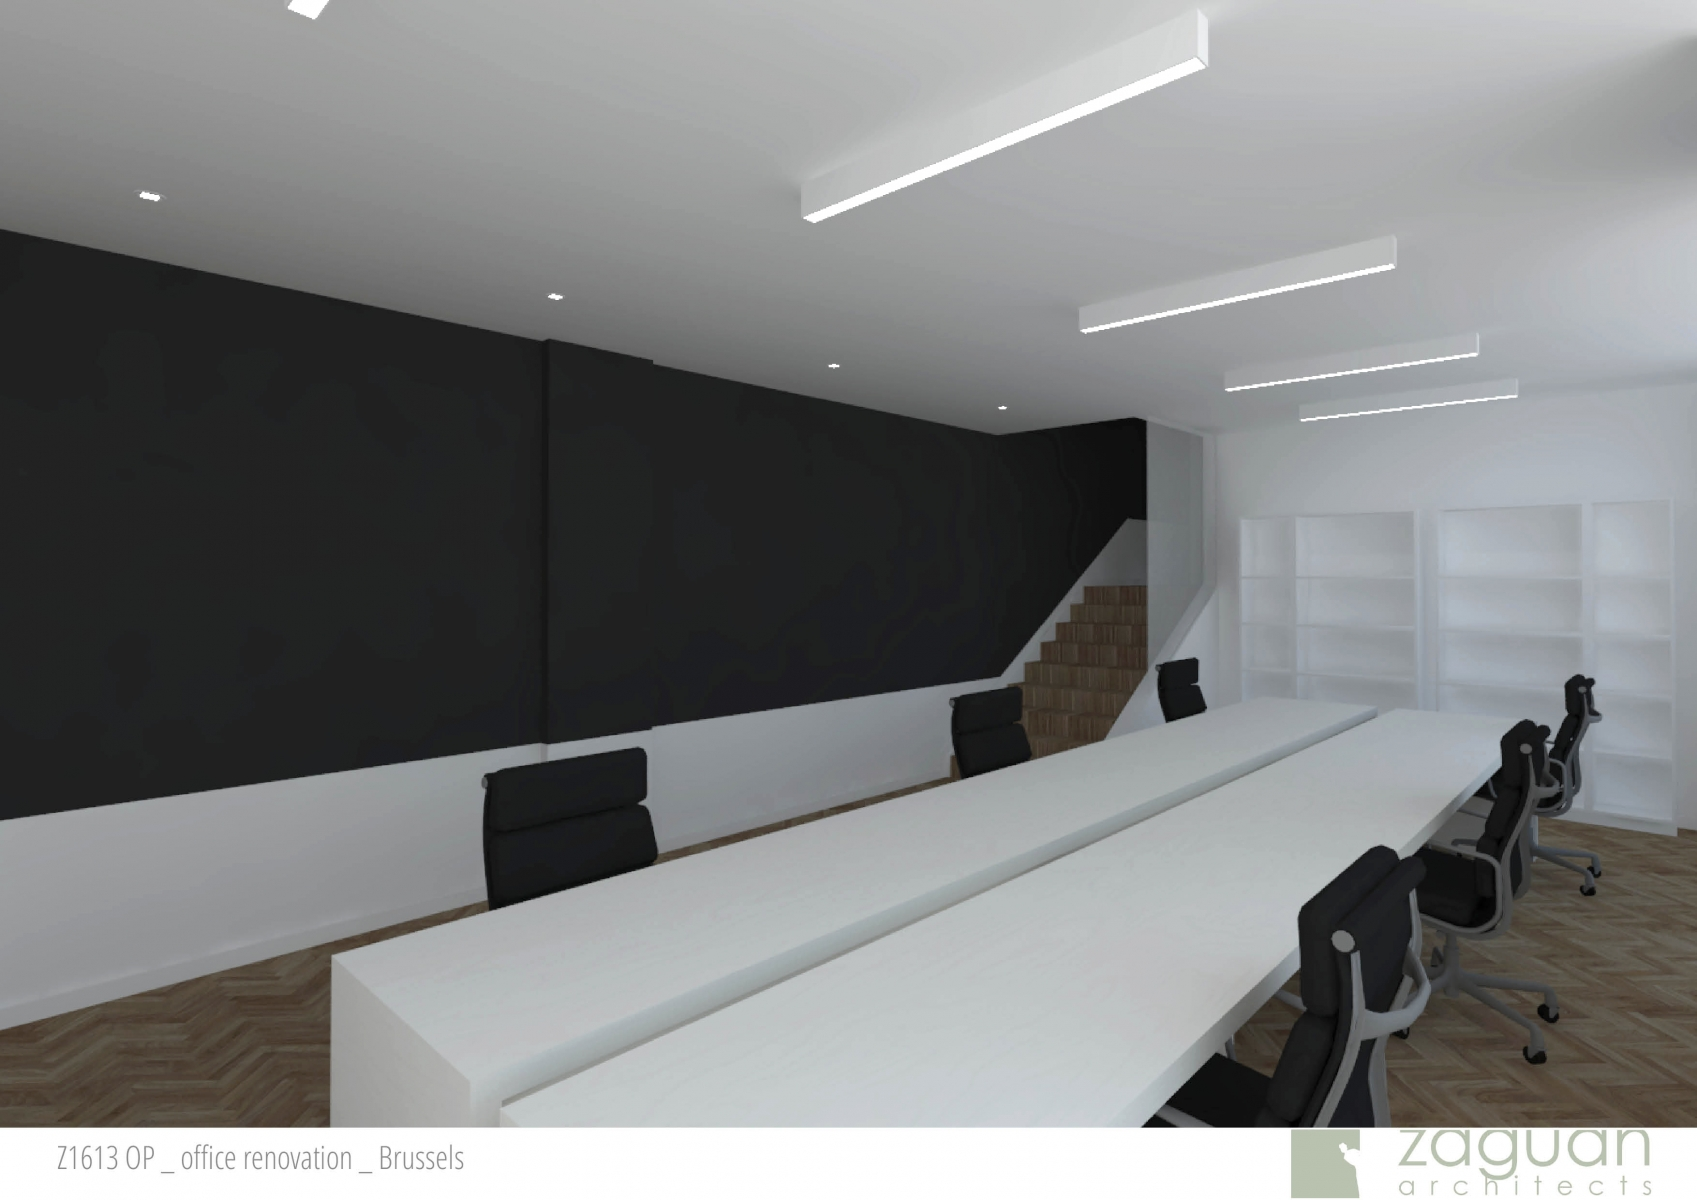 zaguanarchitects office renovation brussel 1613 01